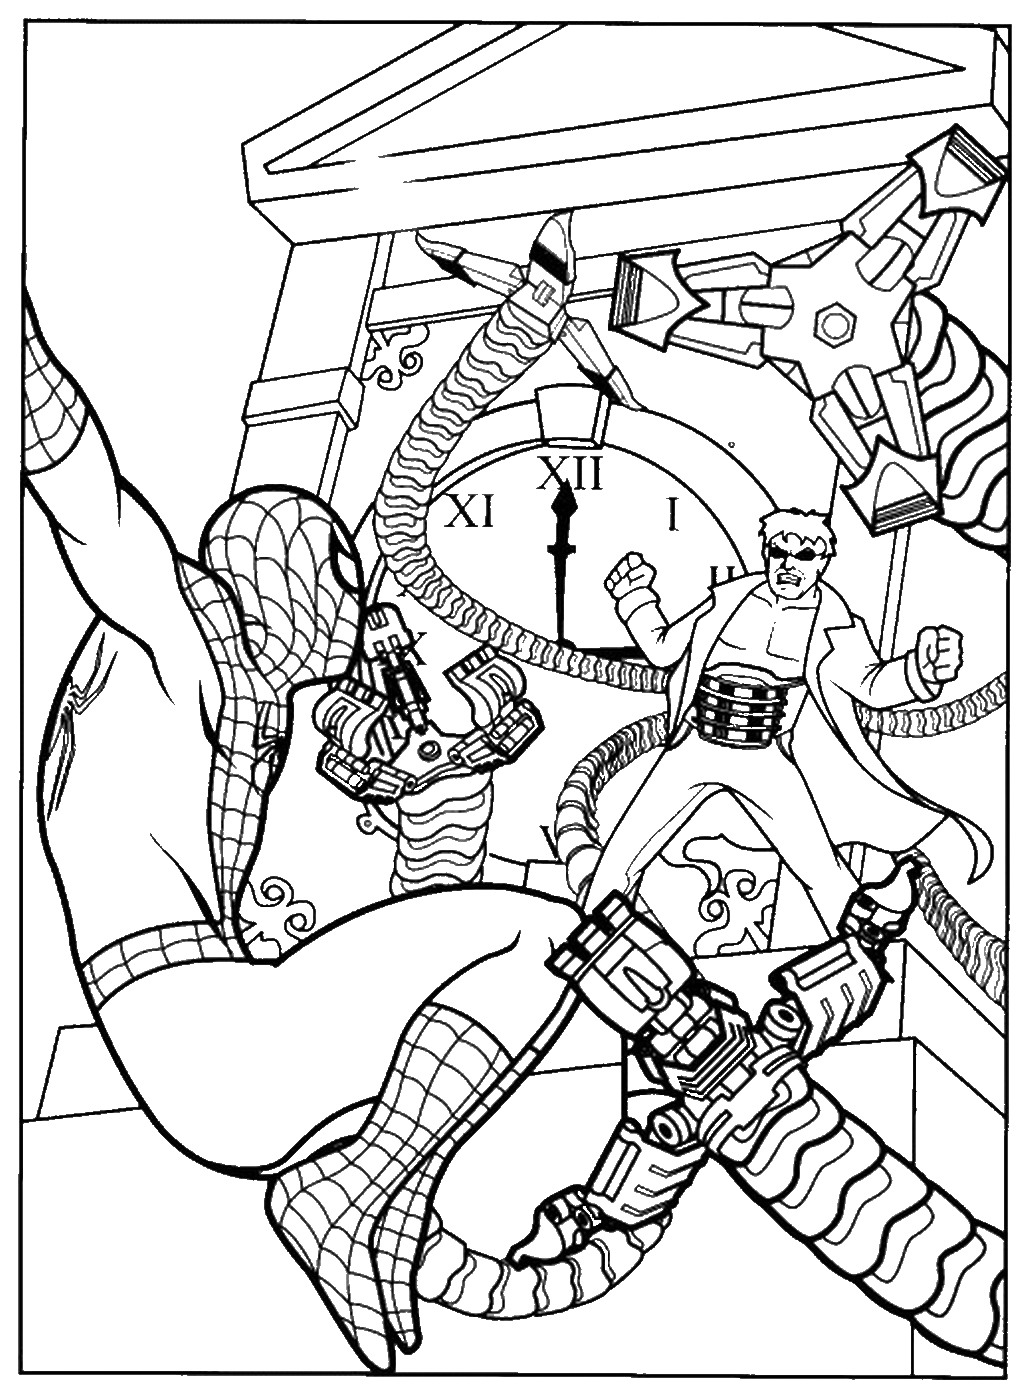 spiderman coloring pages printable free printable spiderman coloring pages for kids coloring pages printable spiderman